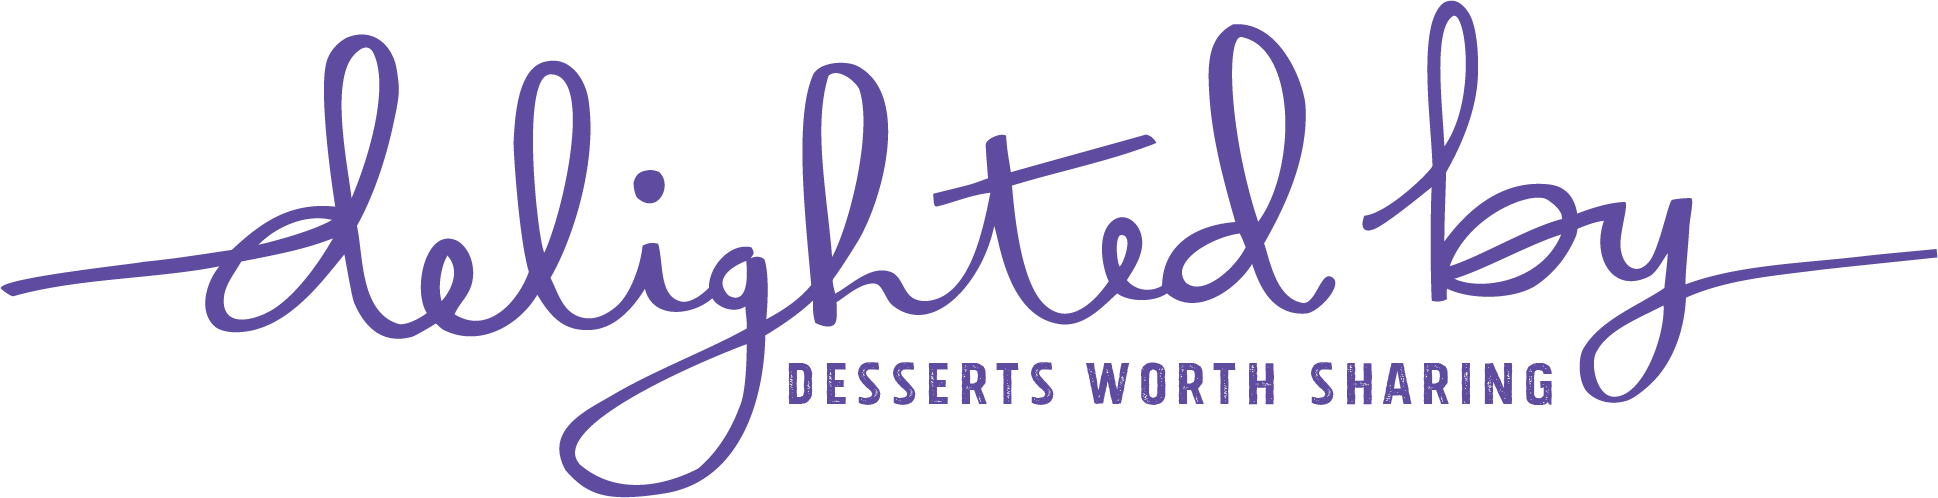 FIND OUR STORES – DELIGHTED BY Desserts